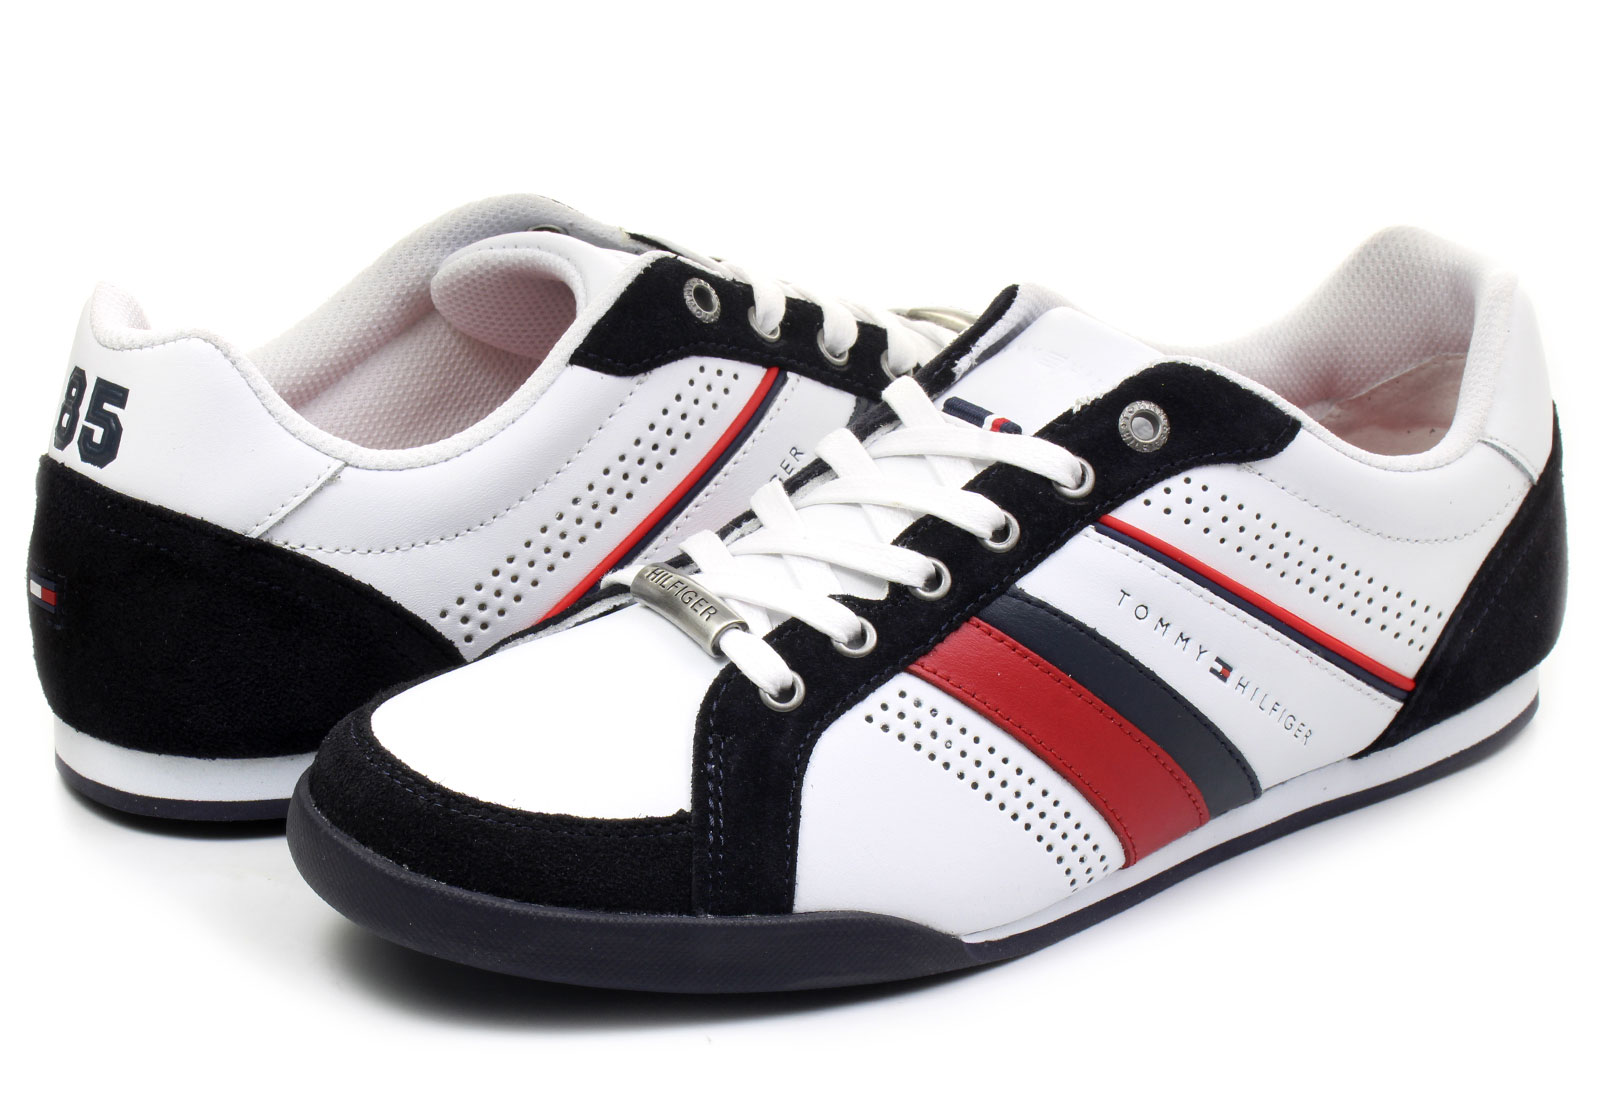 tommy hilfiger shoes riley 4c 16s 1104 100 online shop for sneakers shoes and boots. Black Bedroom Furniture Sets. Home Design Ideas